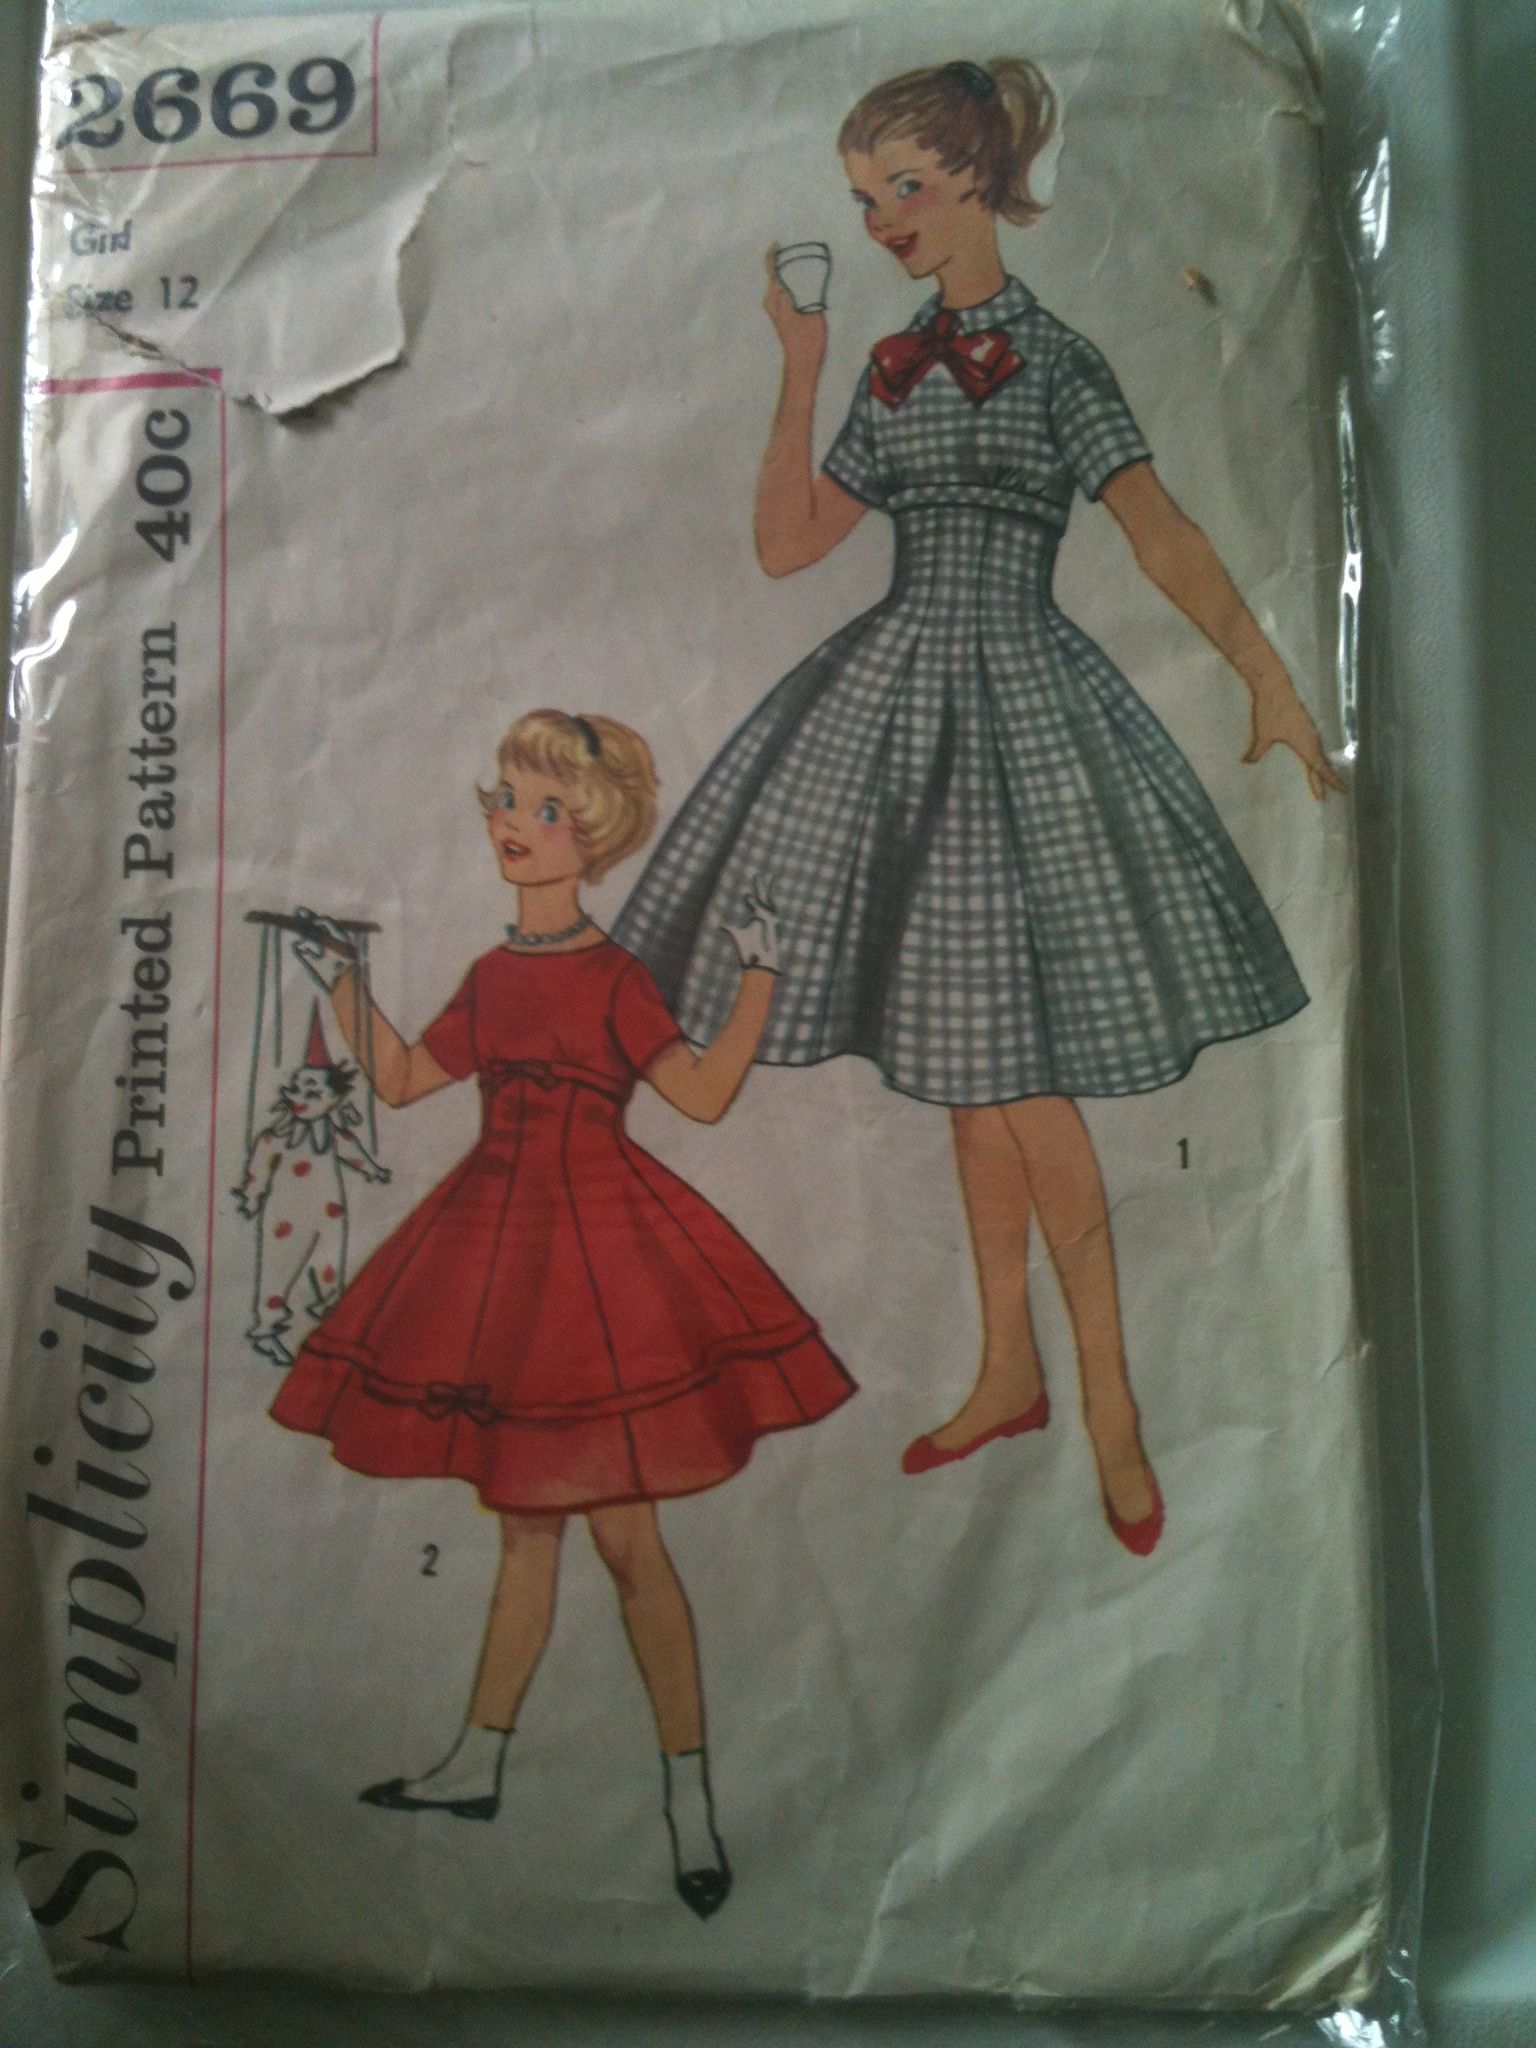 #Simplicity2669. Girls' dress, size 12. Looks to be from the 1950's.